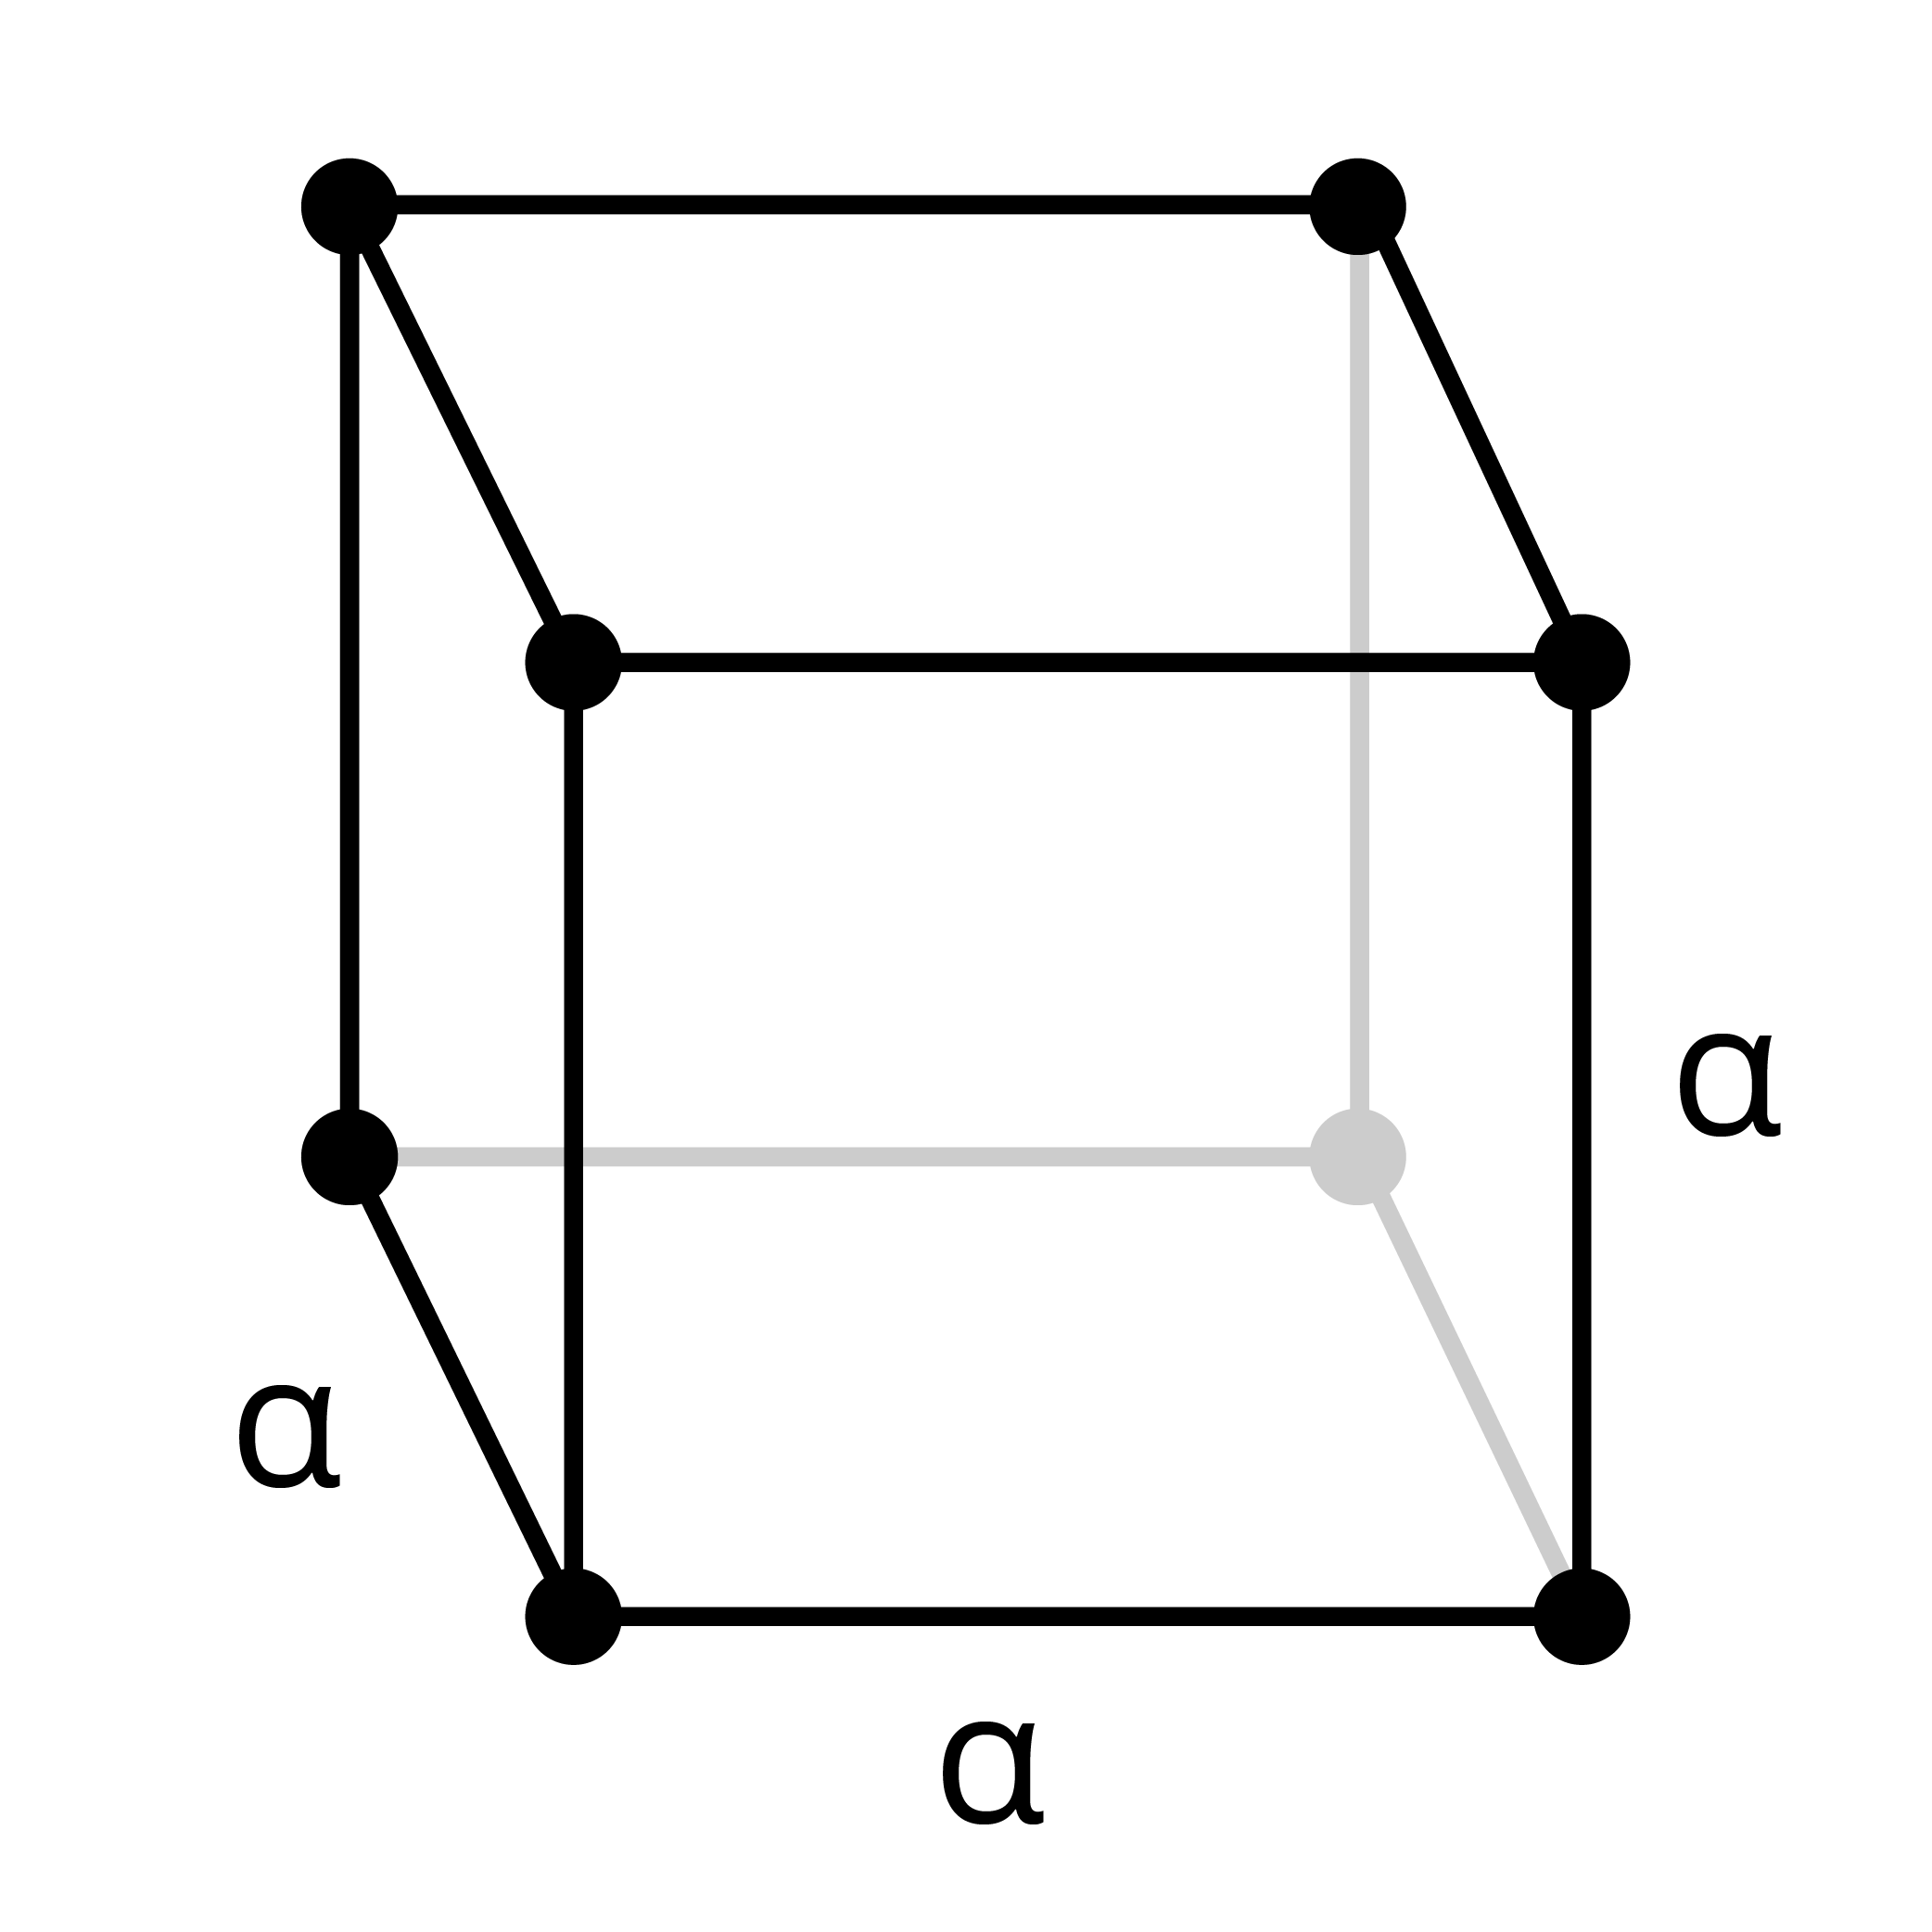 Wireframe shape of a cube with points at each corner